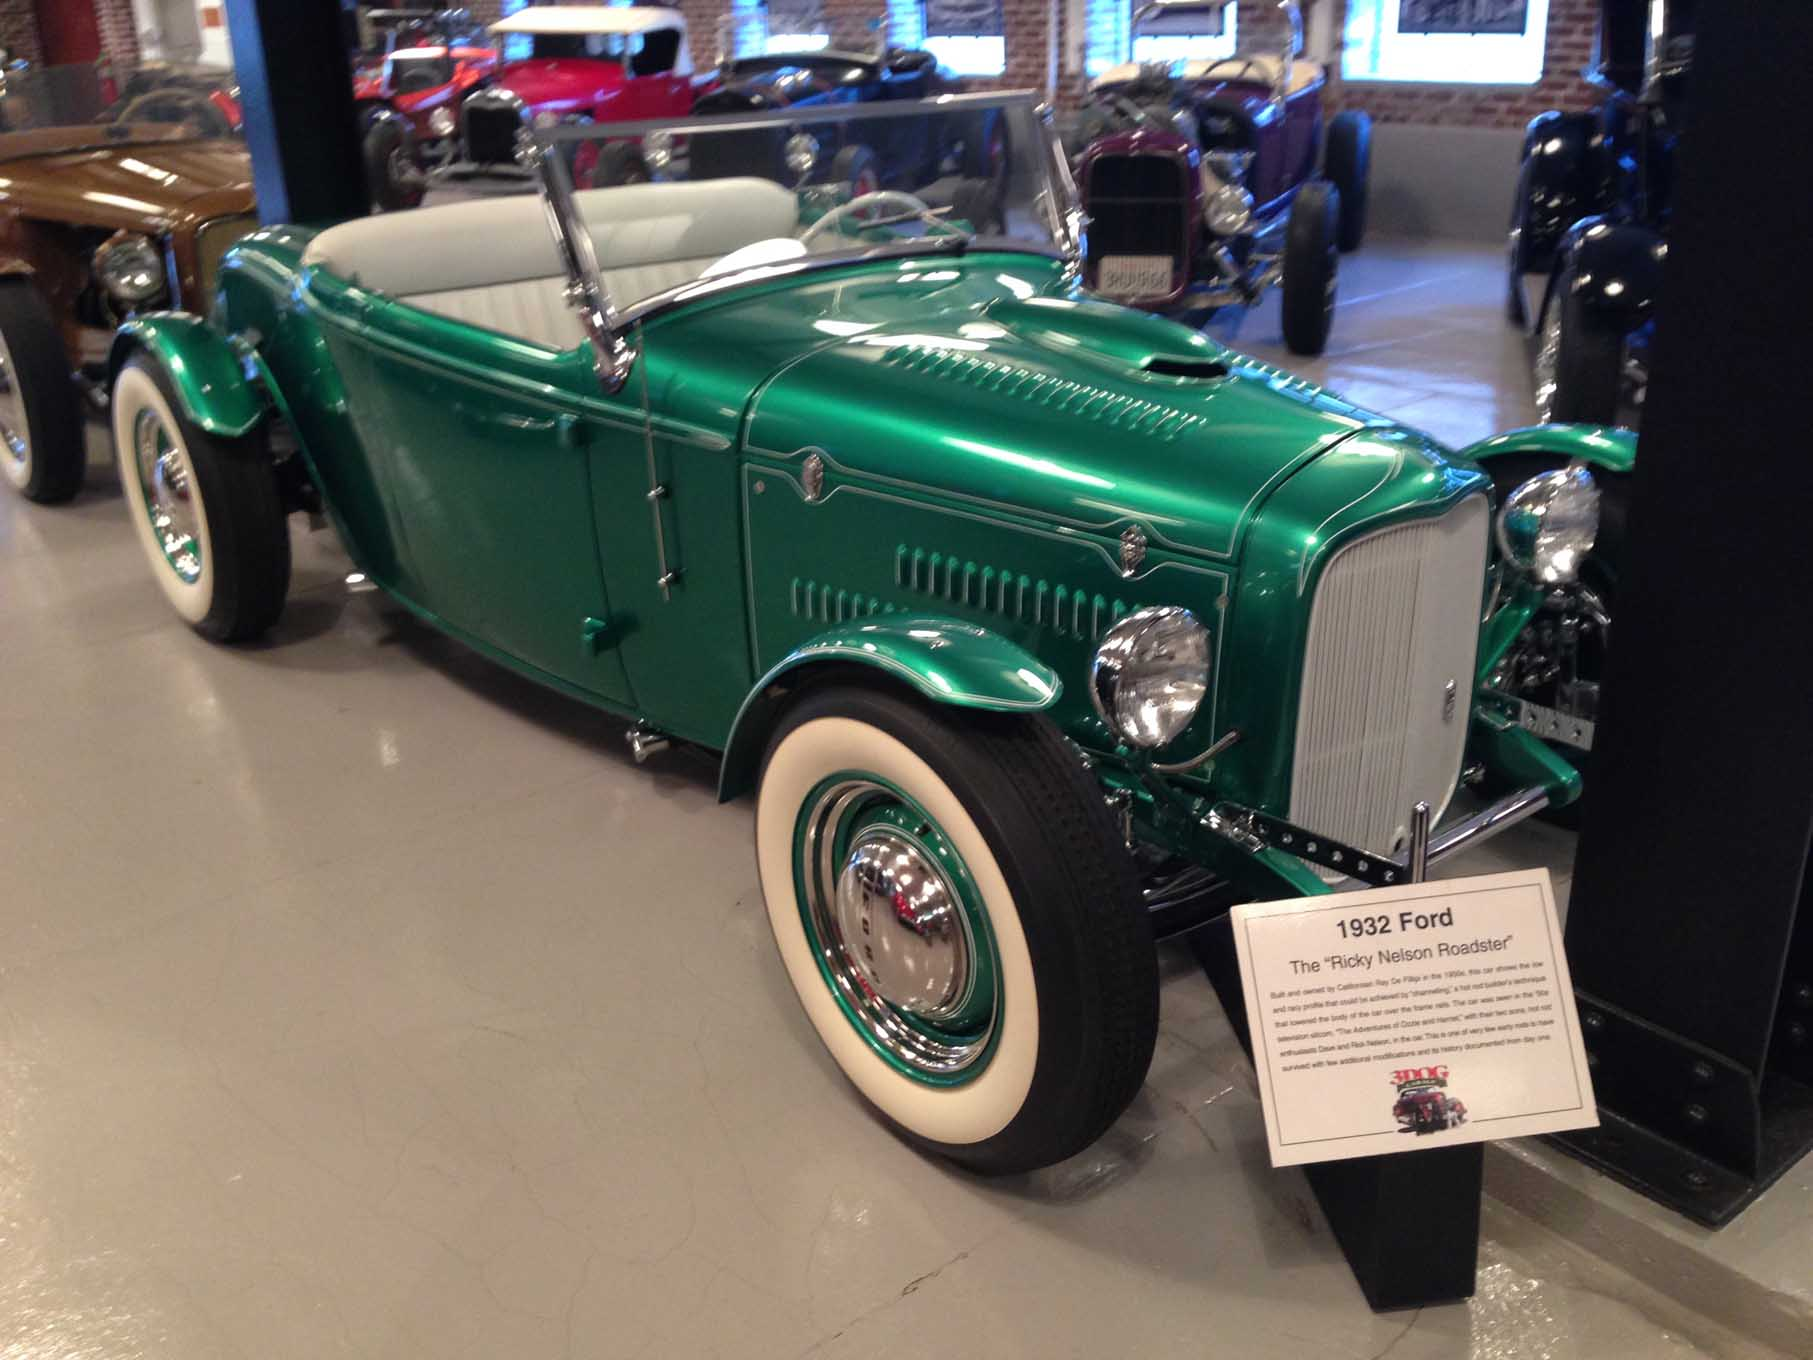 We were given a tour of the private car collection of Ross Myers at the 3 Dogs Garage. Ross has a great collection of early hot rods with some amazing history. This 1932 Ford was featured on the Ozzie and Harriett Show and is known as the Ricky Nelson Roadster.